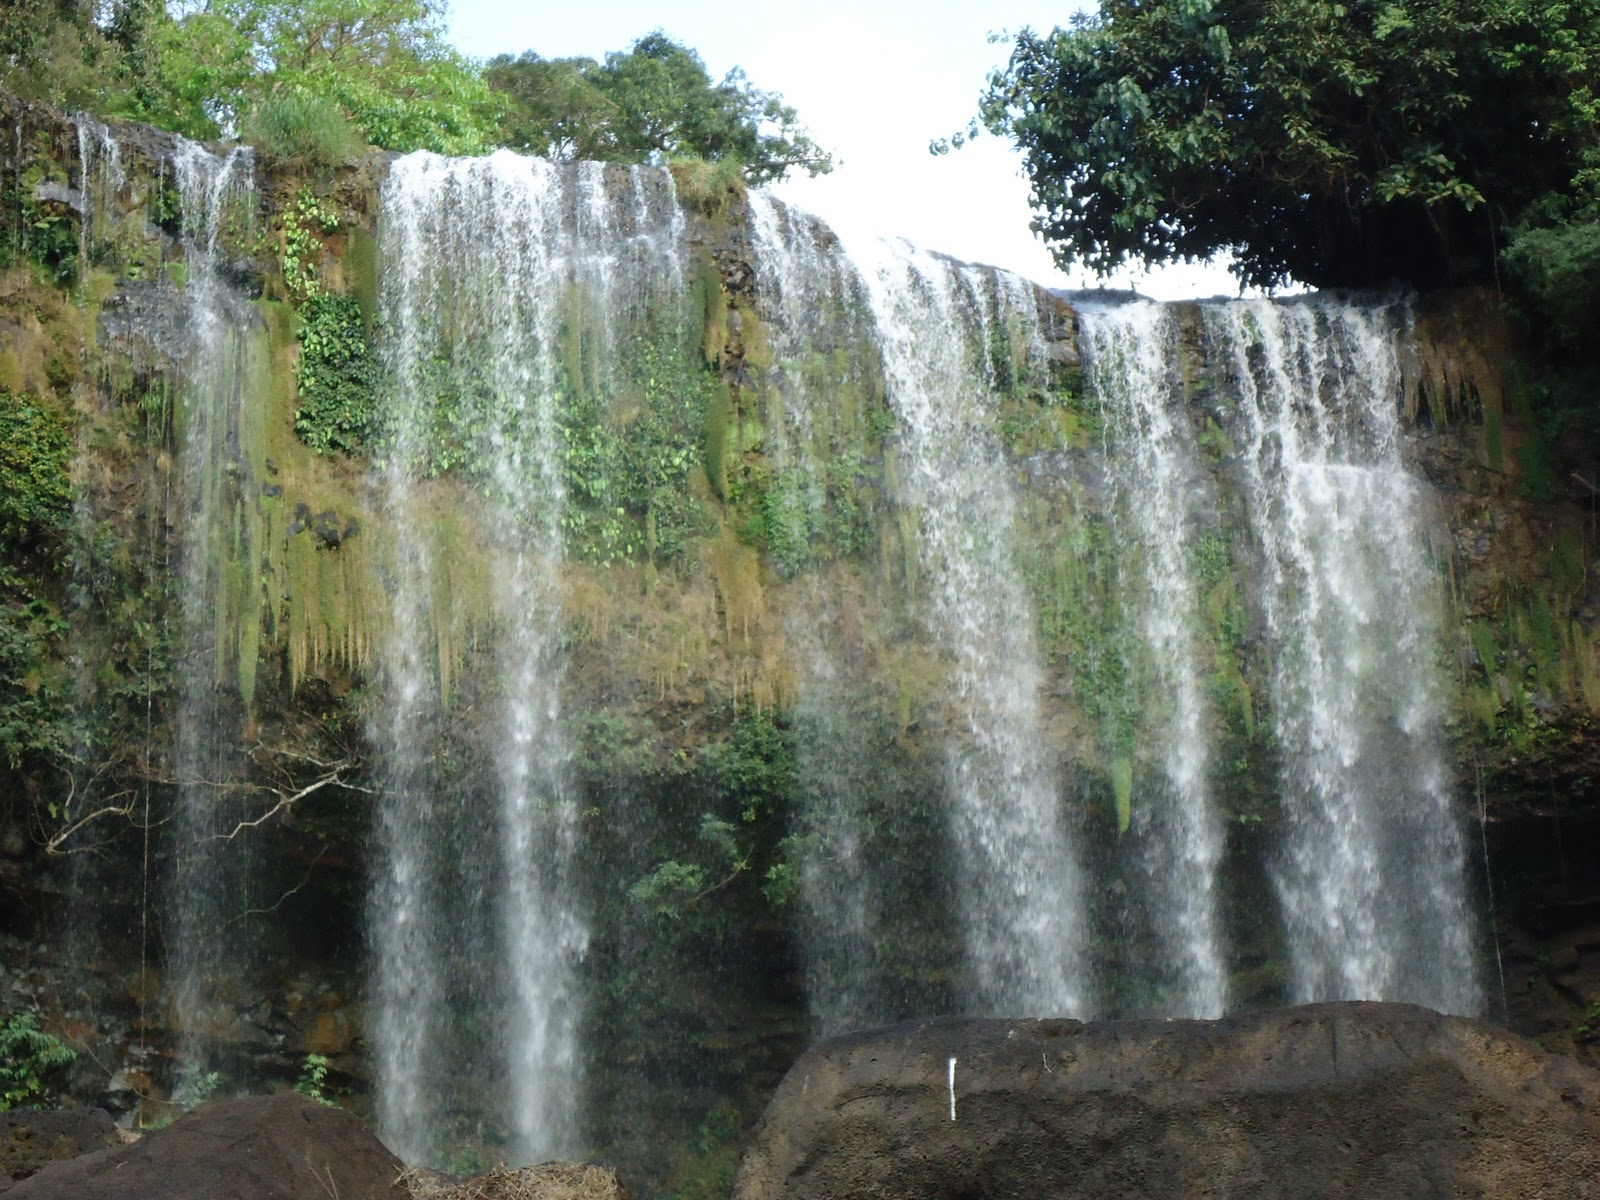 Bao Loc (Dalat) Vietnam  city photo : ... waterfall Bao Loc Lam Dong Viet Nam 04 02 2011 Part 6